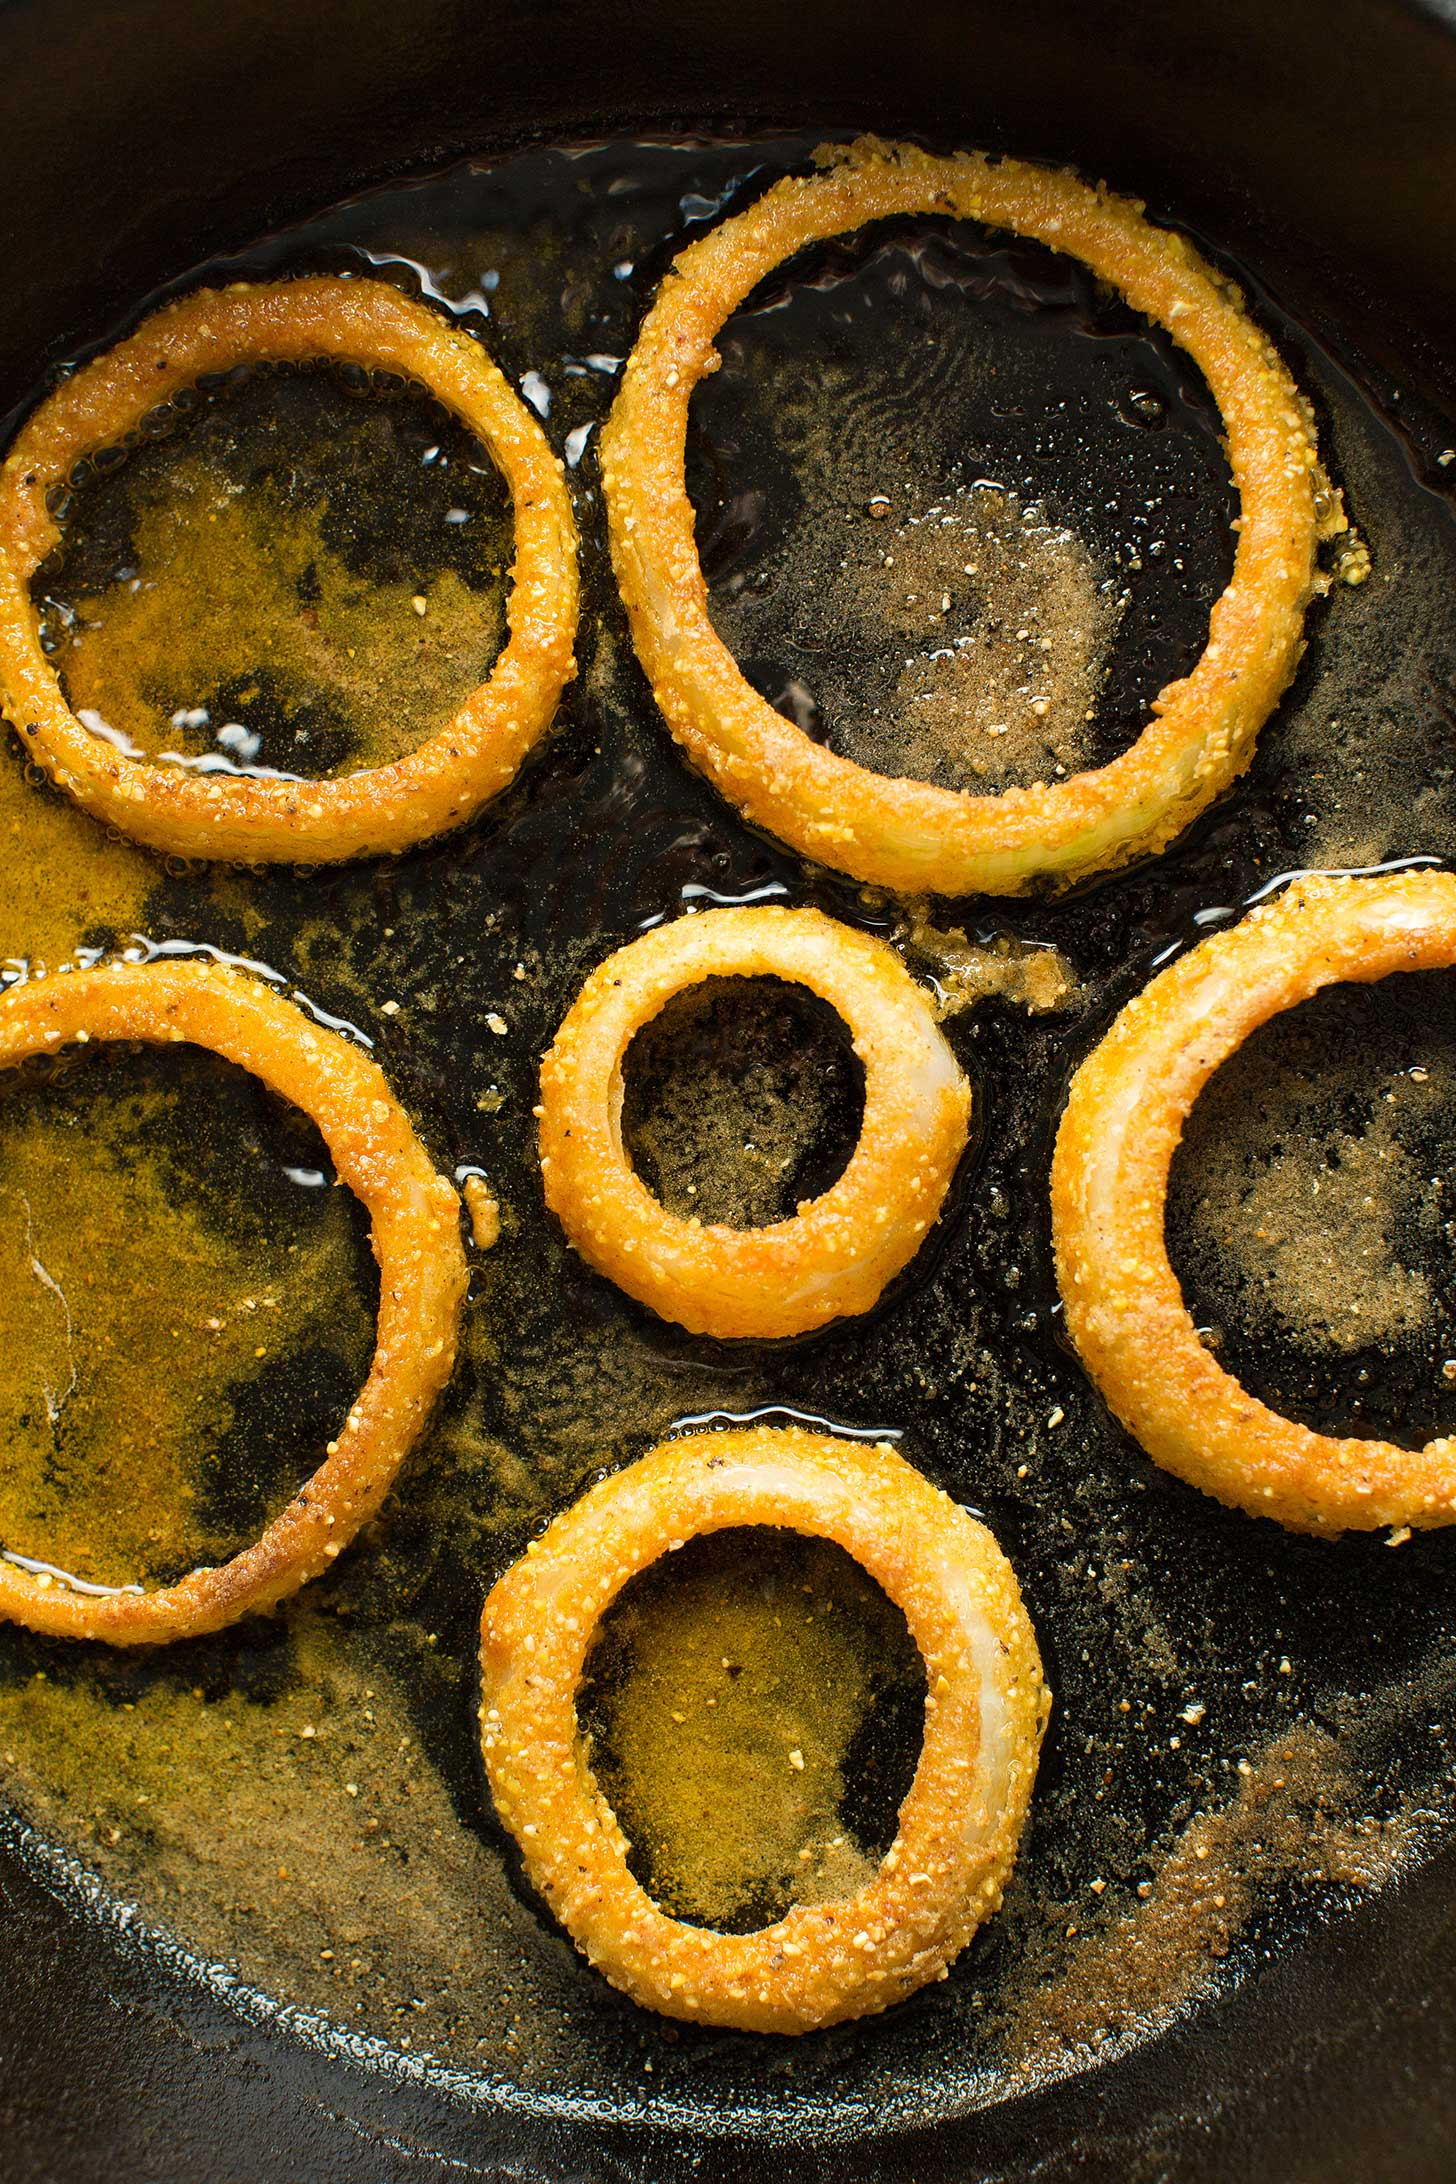 Gluten-free onion rings sizzling in a cast iron skillet